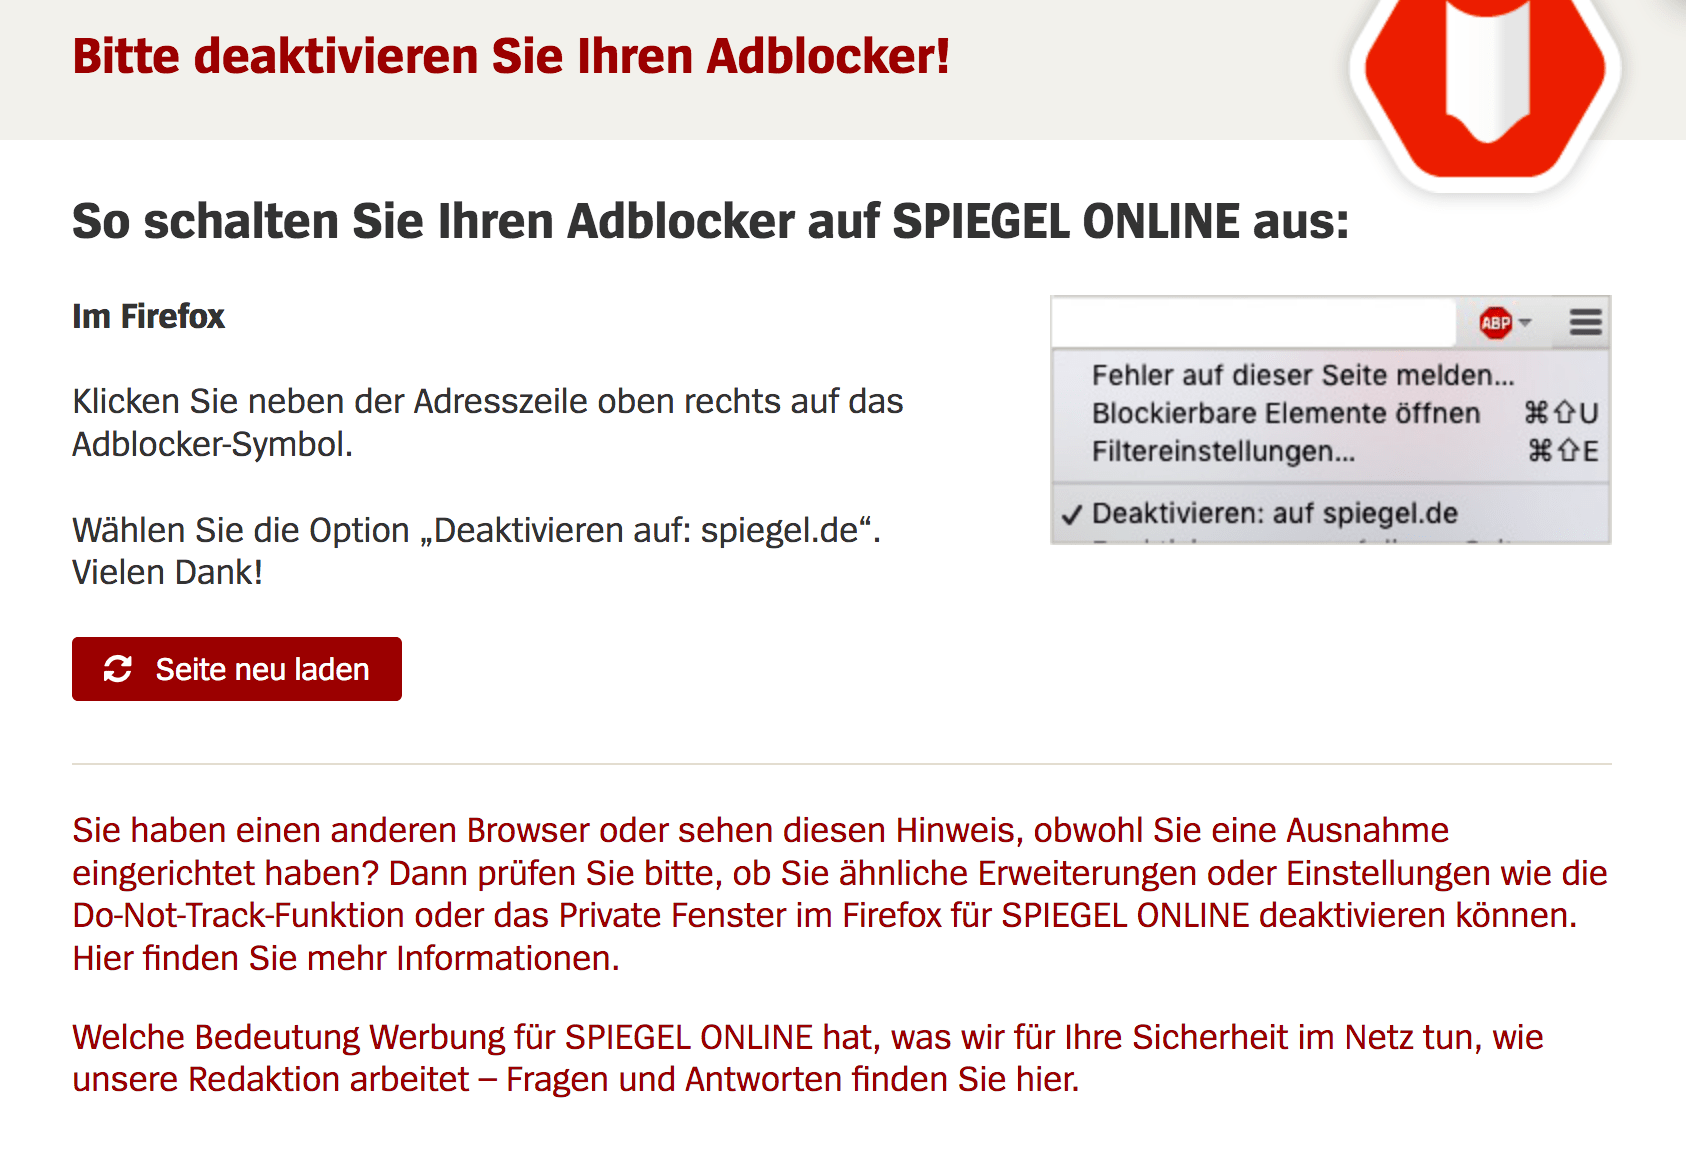 Spiehel Online Spiegel De Is Withholding Contents Even When Whitelisted